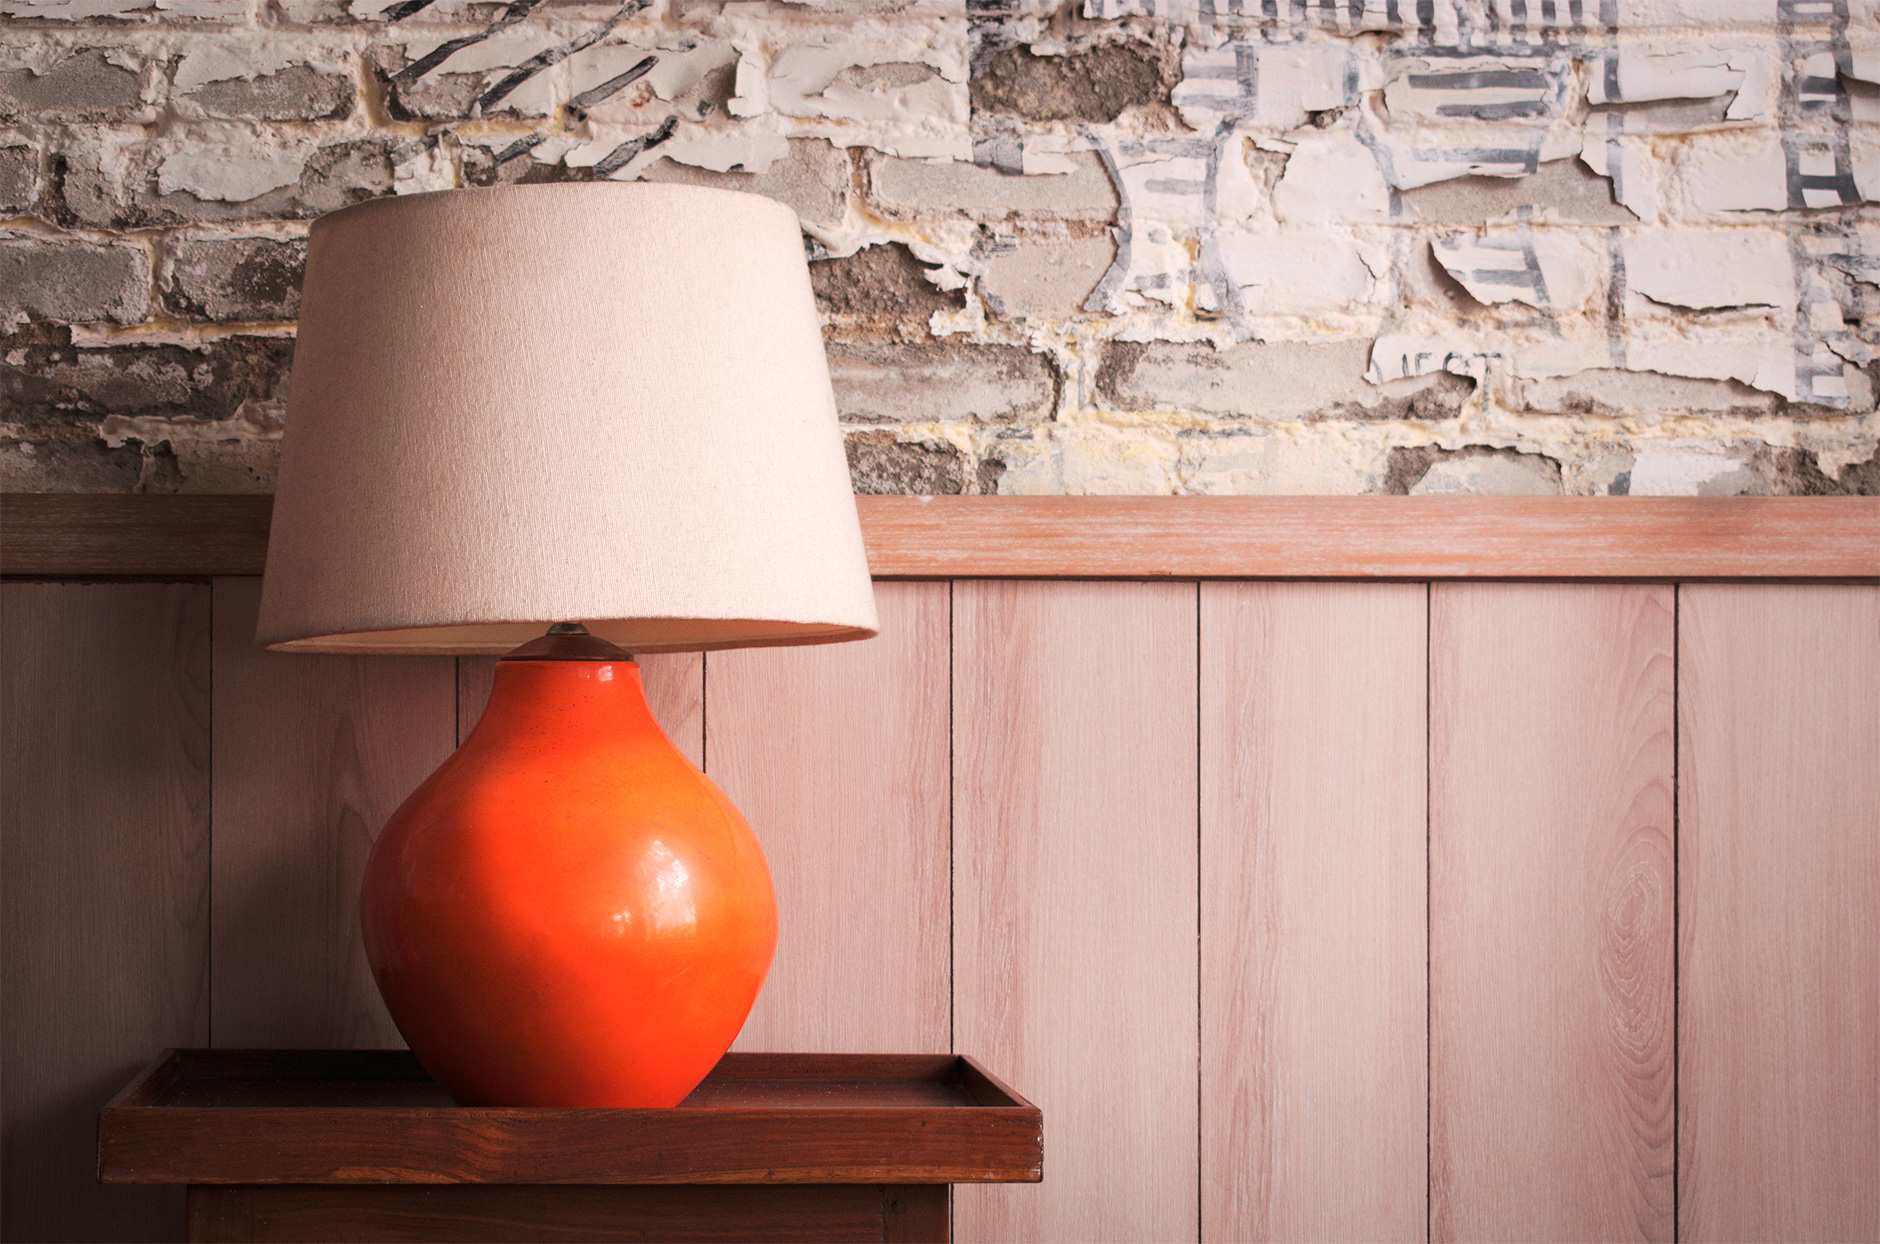 red lamp wood side table wood paneling distressed brick